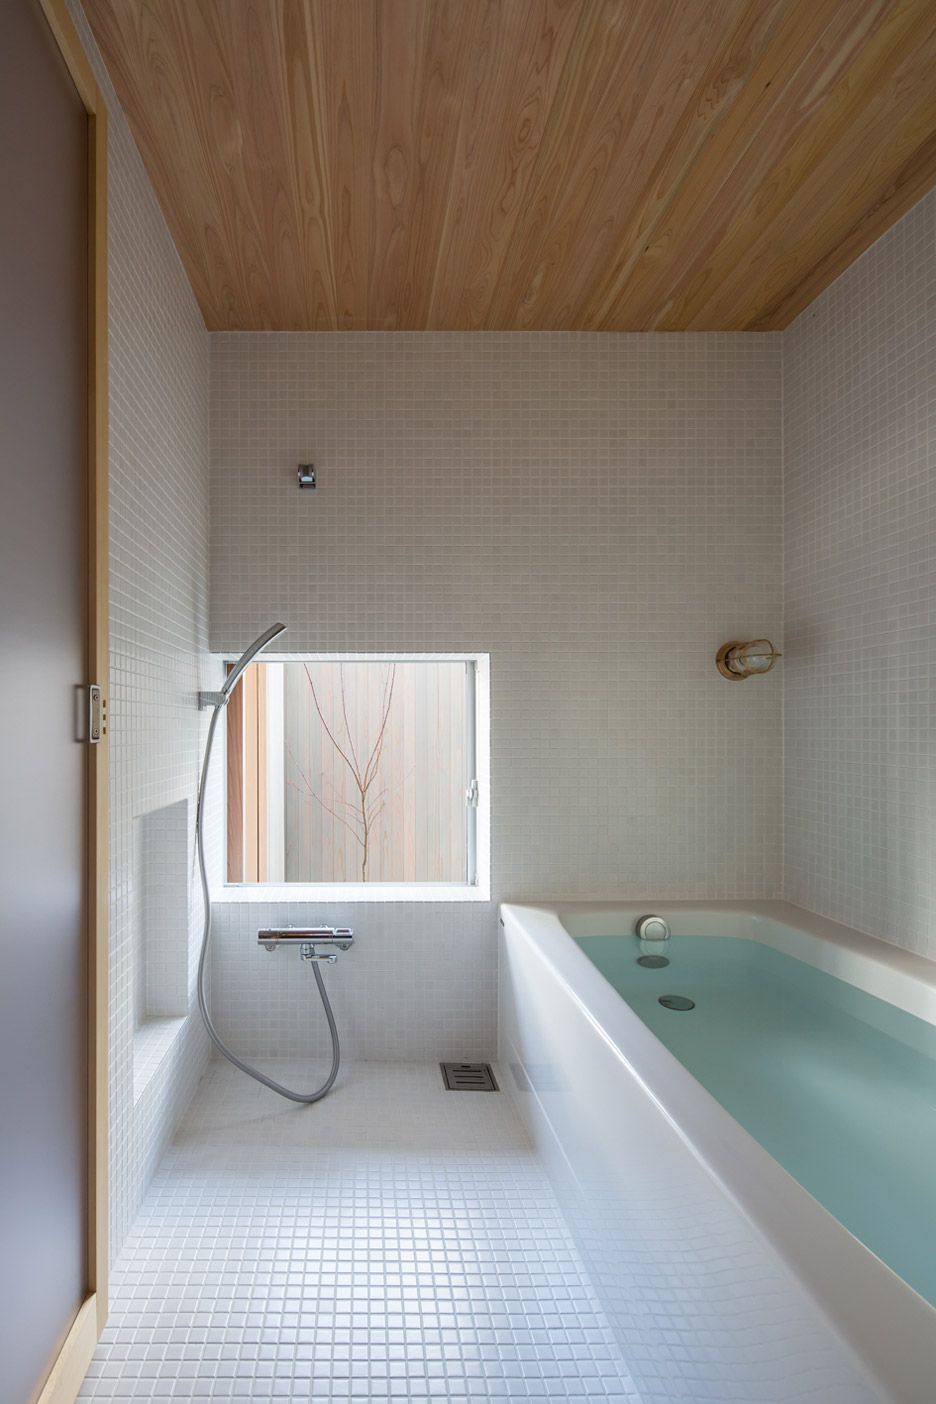 Japan Badewanne Wasser Plywood Interiors Provide Compact Japanese House Storage Cozy Vibes